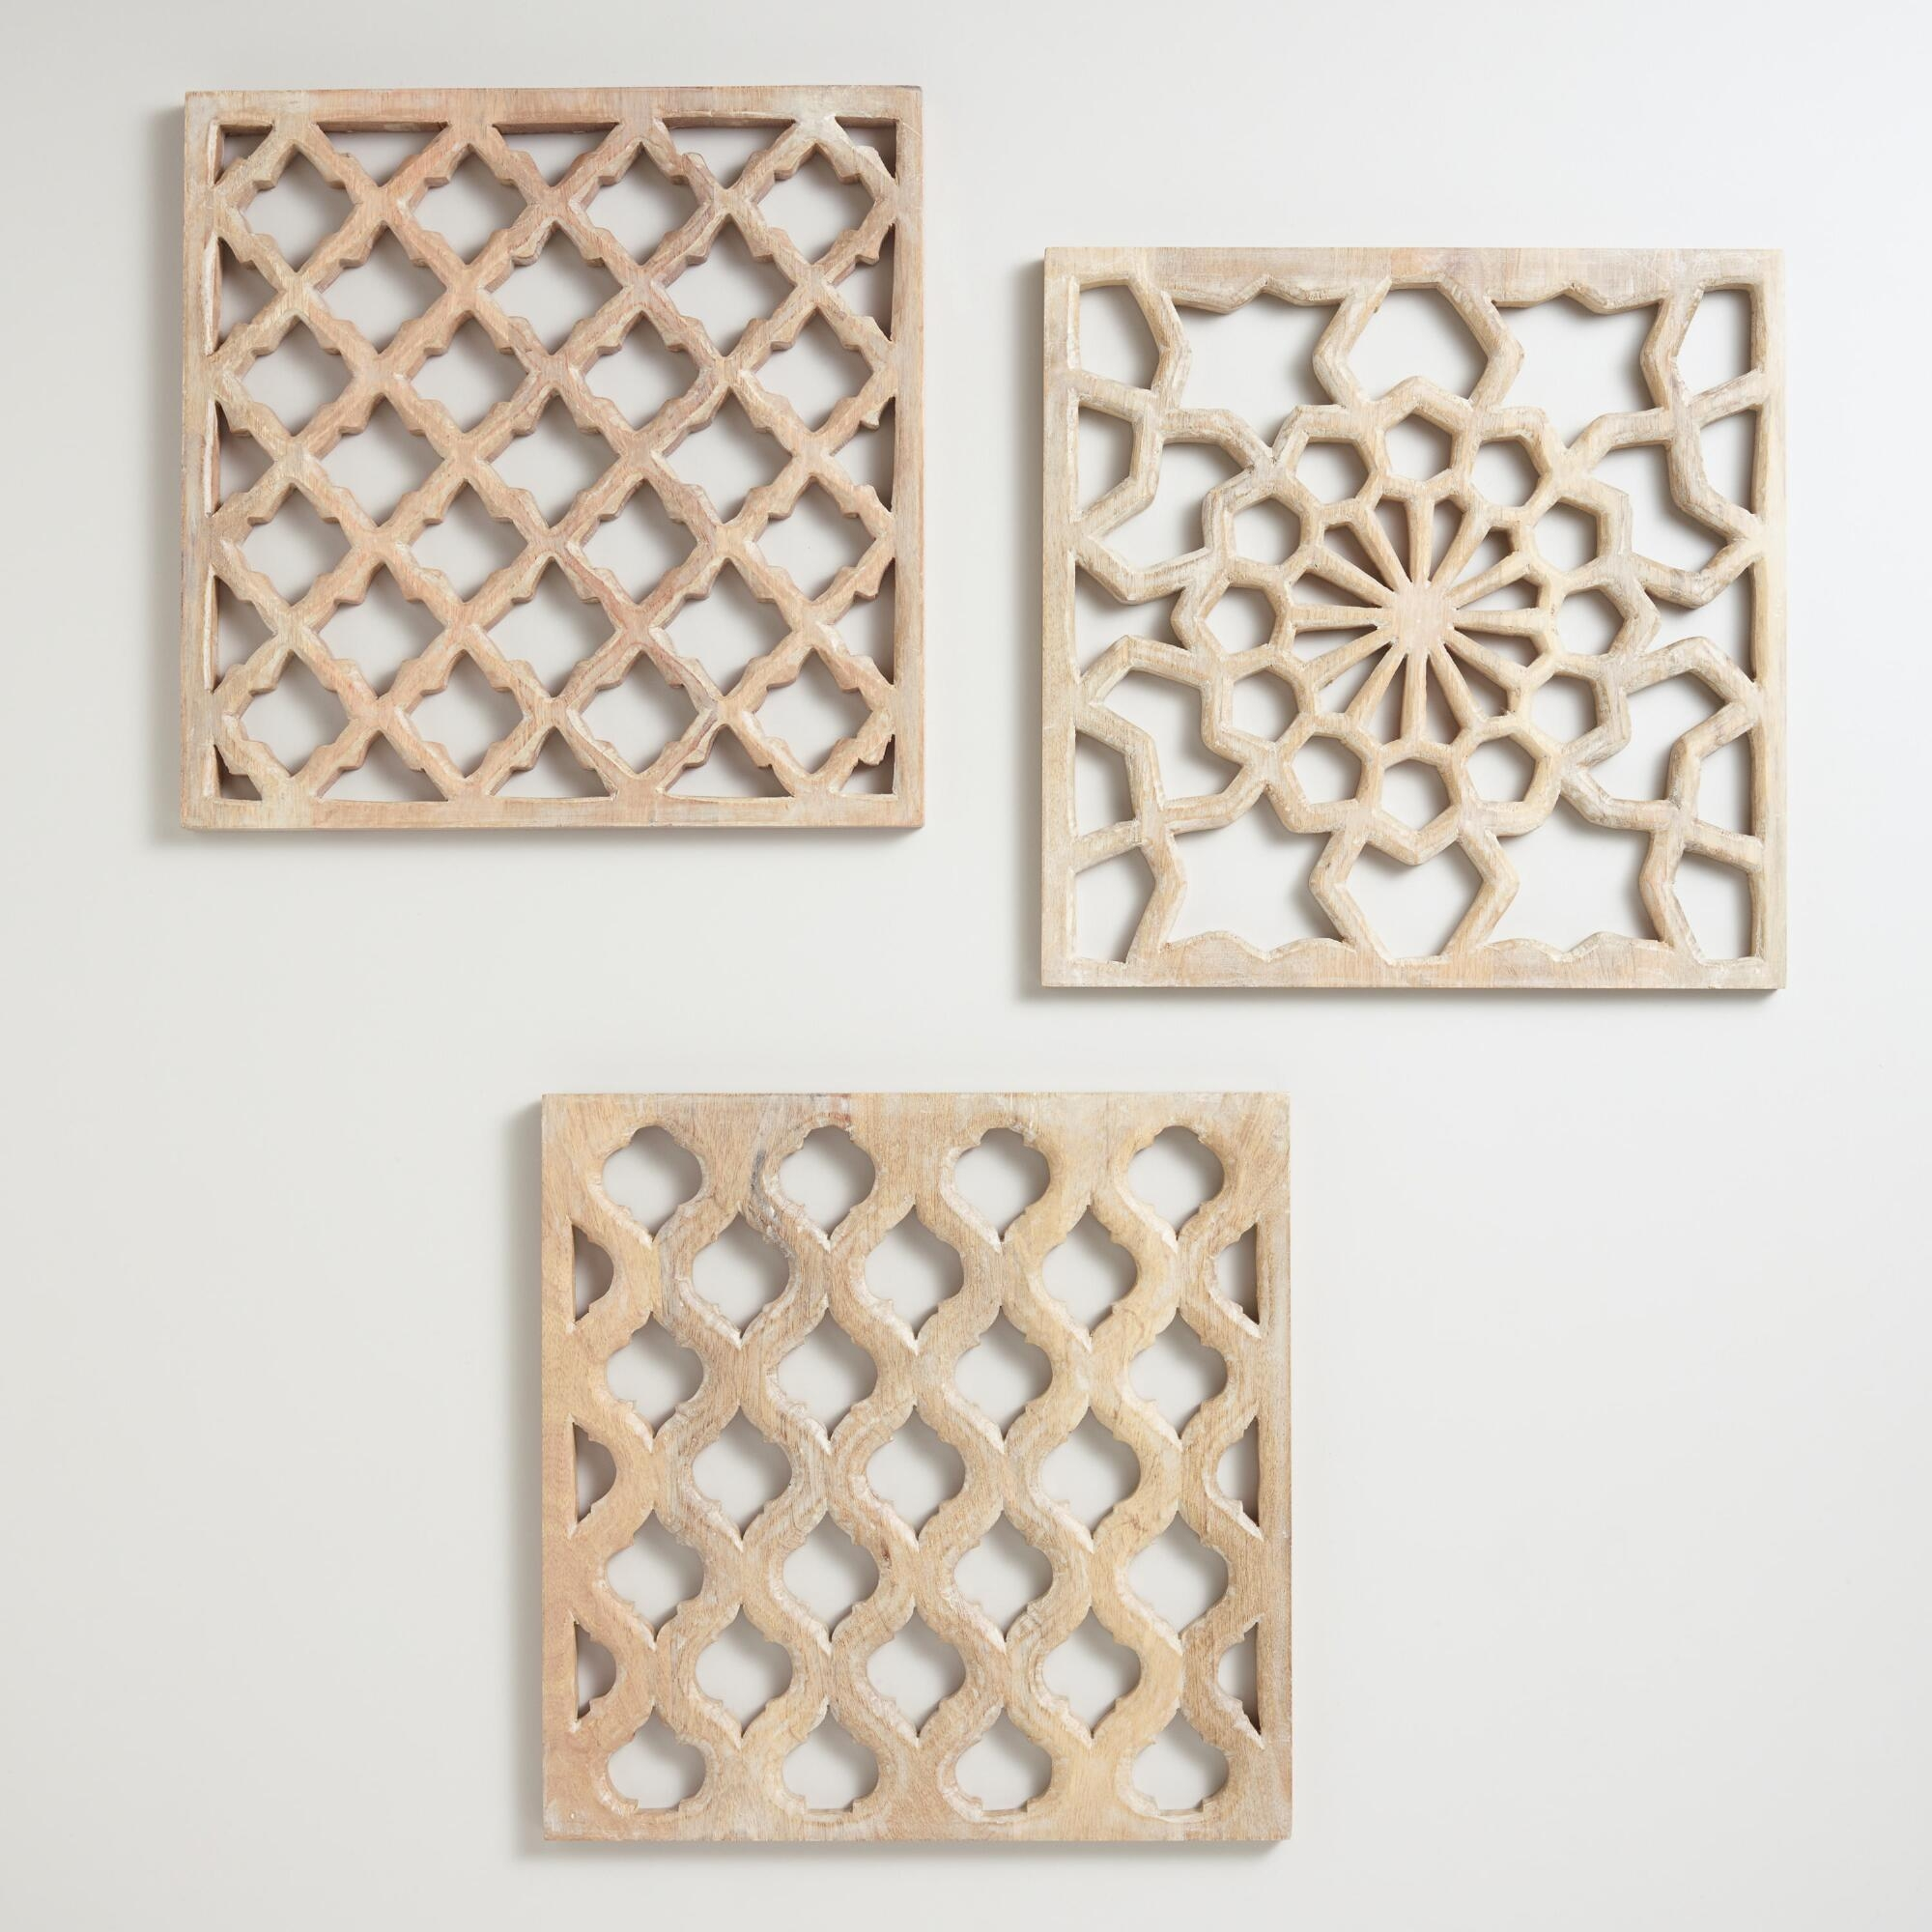 Carved Wooden Wall Panels – Wooden Wall Panels: Way To Enhance The With Regard To Wooden Wall Art Panels (View 4 of 20)